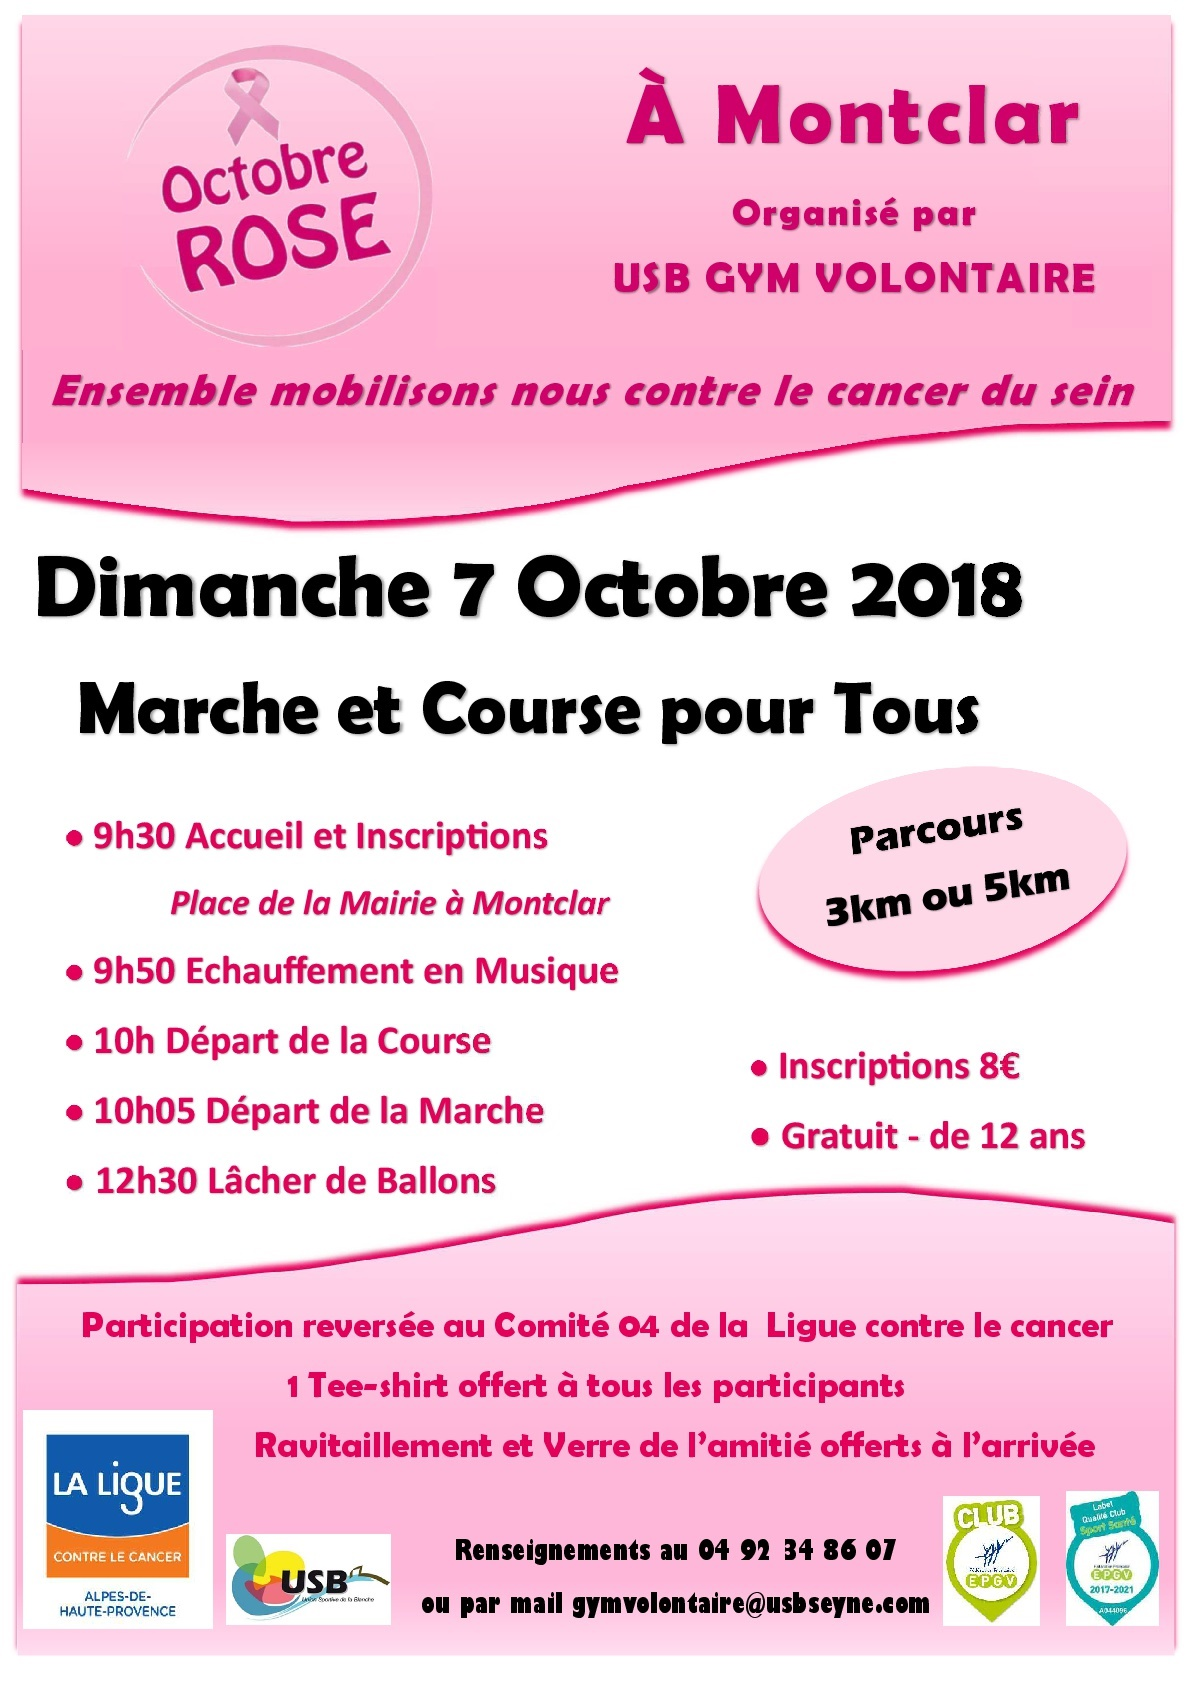 Octobre Rose 2018 001